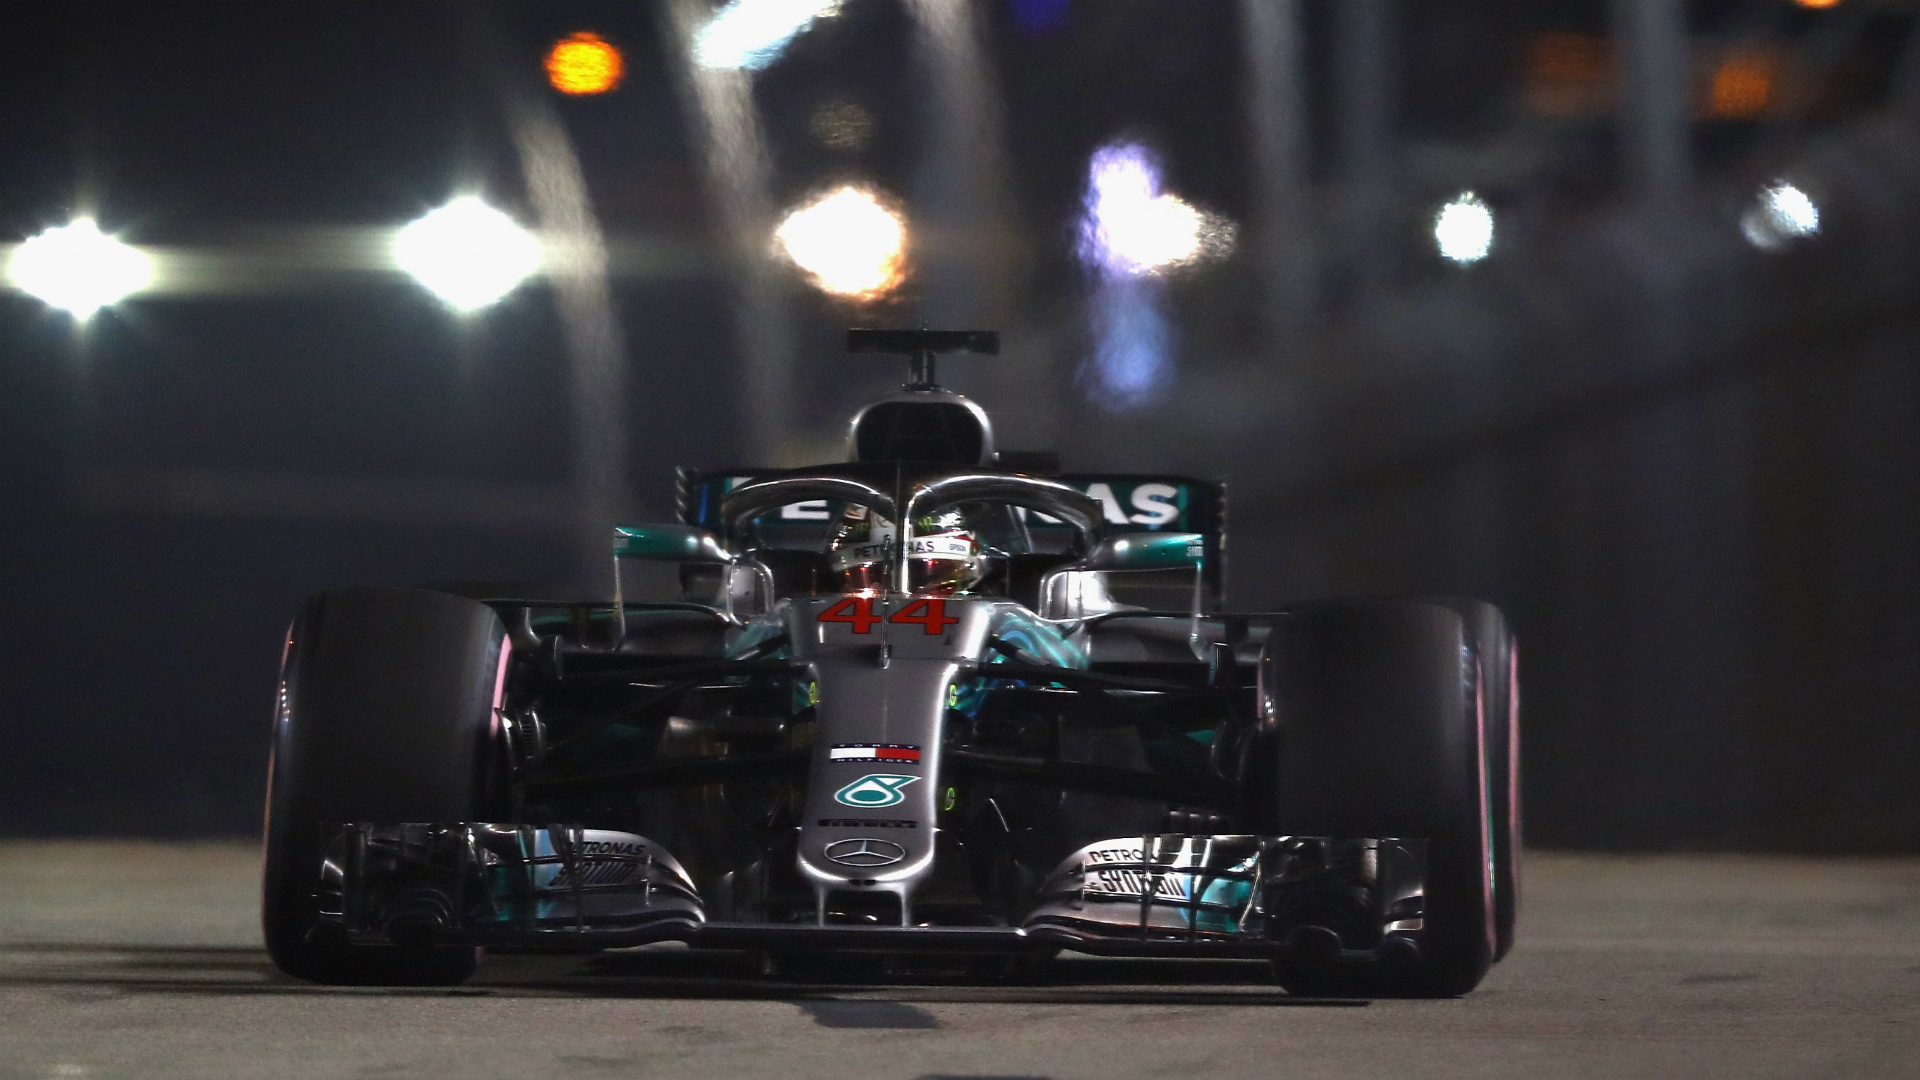 Hamilton smashes lap record to claim Singapore pole